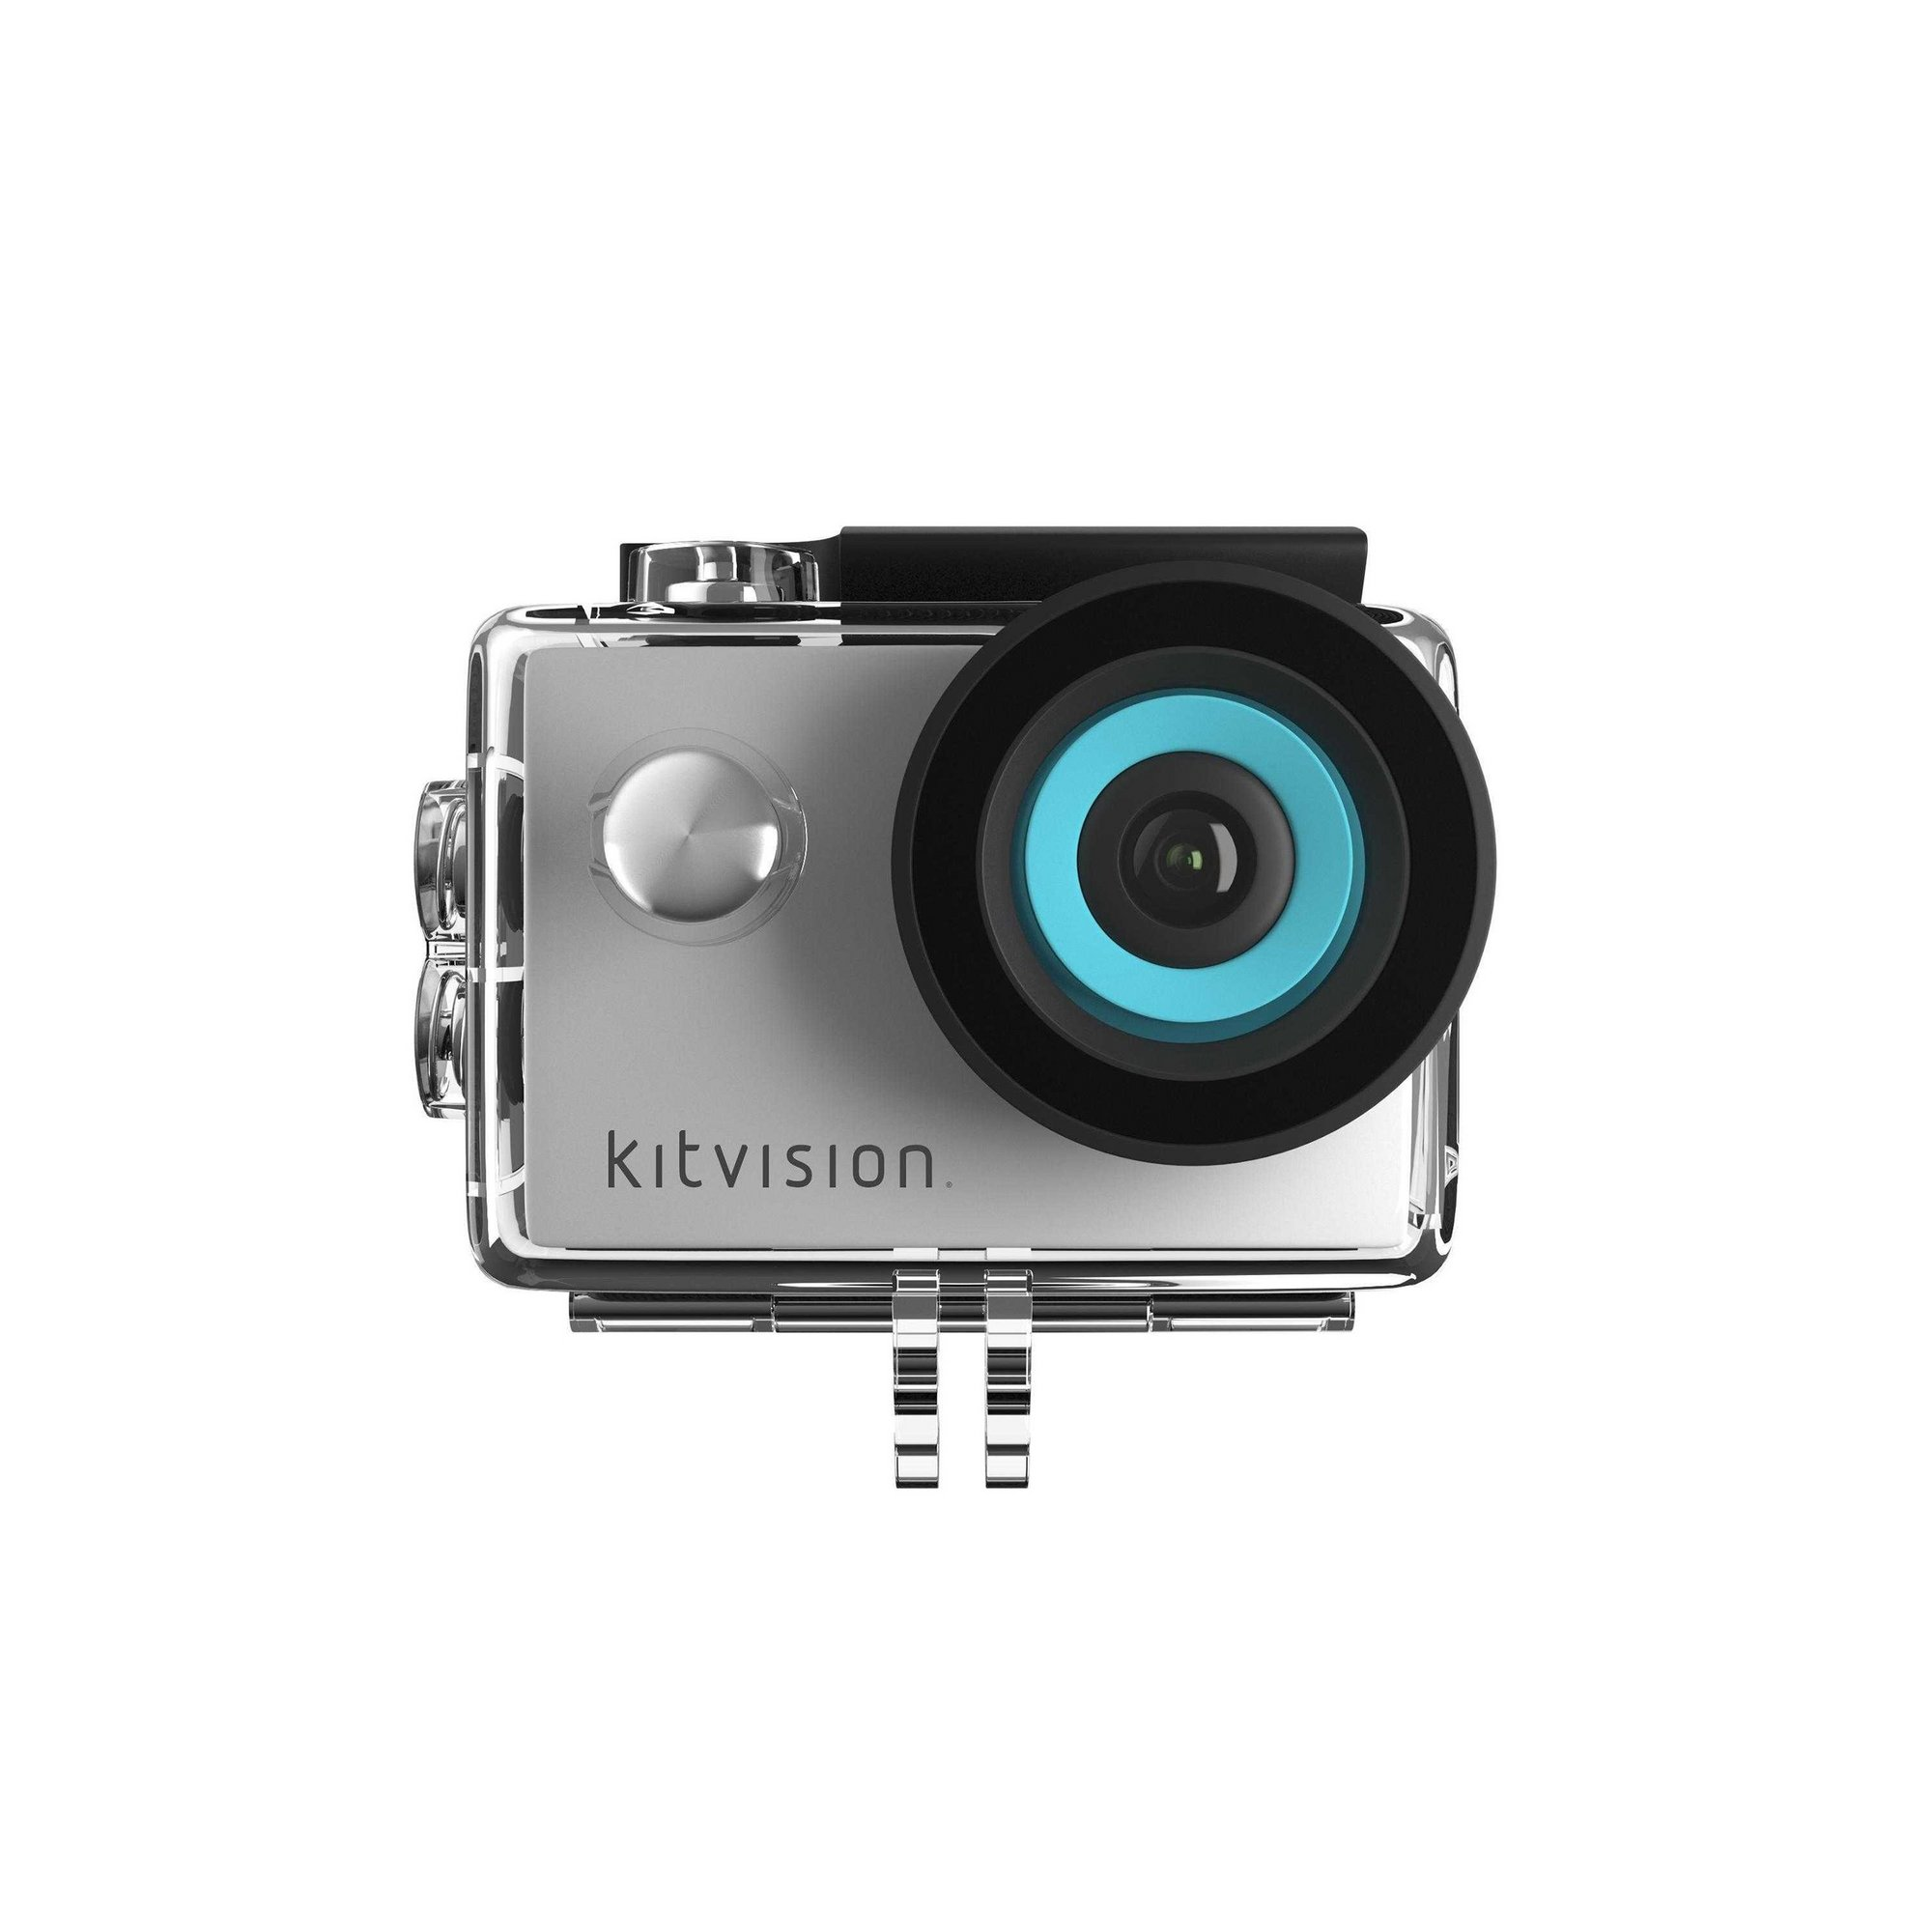 Image of KitVision Action Camera